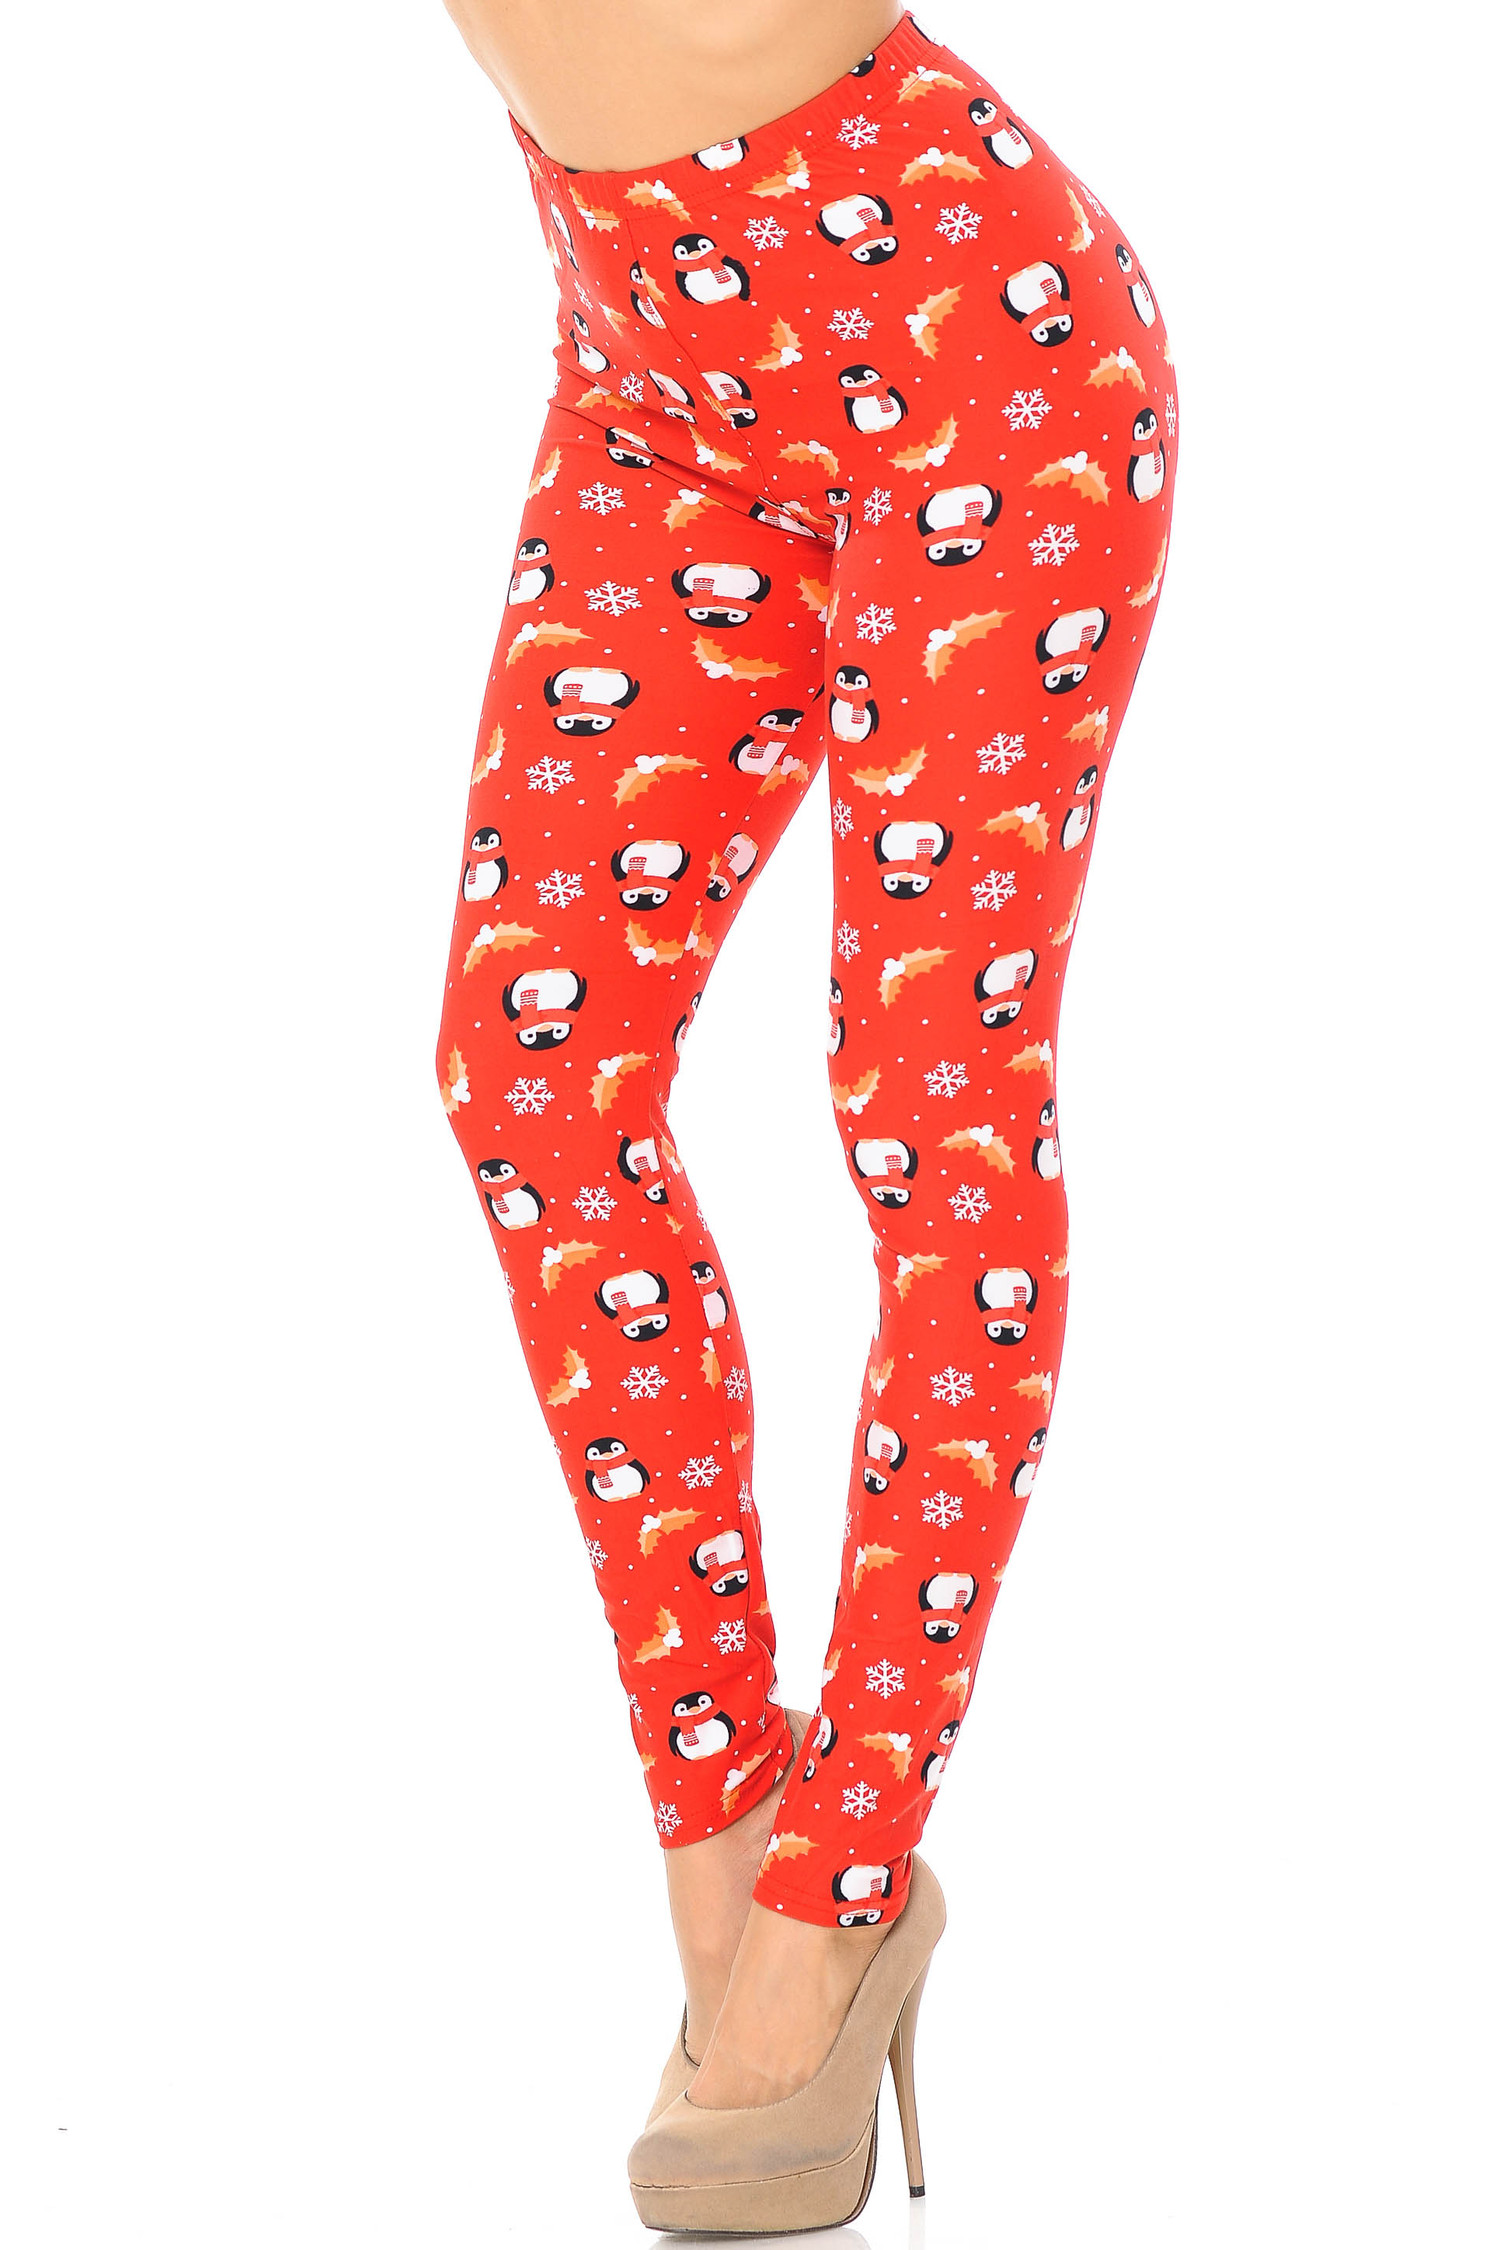 Brushed Ruby Red Penguins Mistletoe and Snowflake Extra Plus Size Leggings - 3X-5X